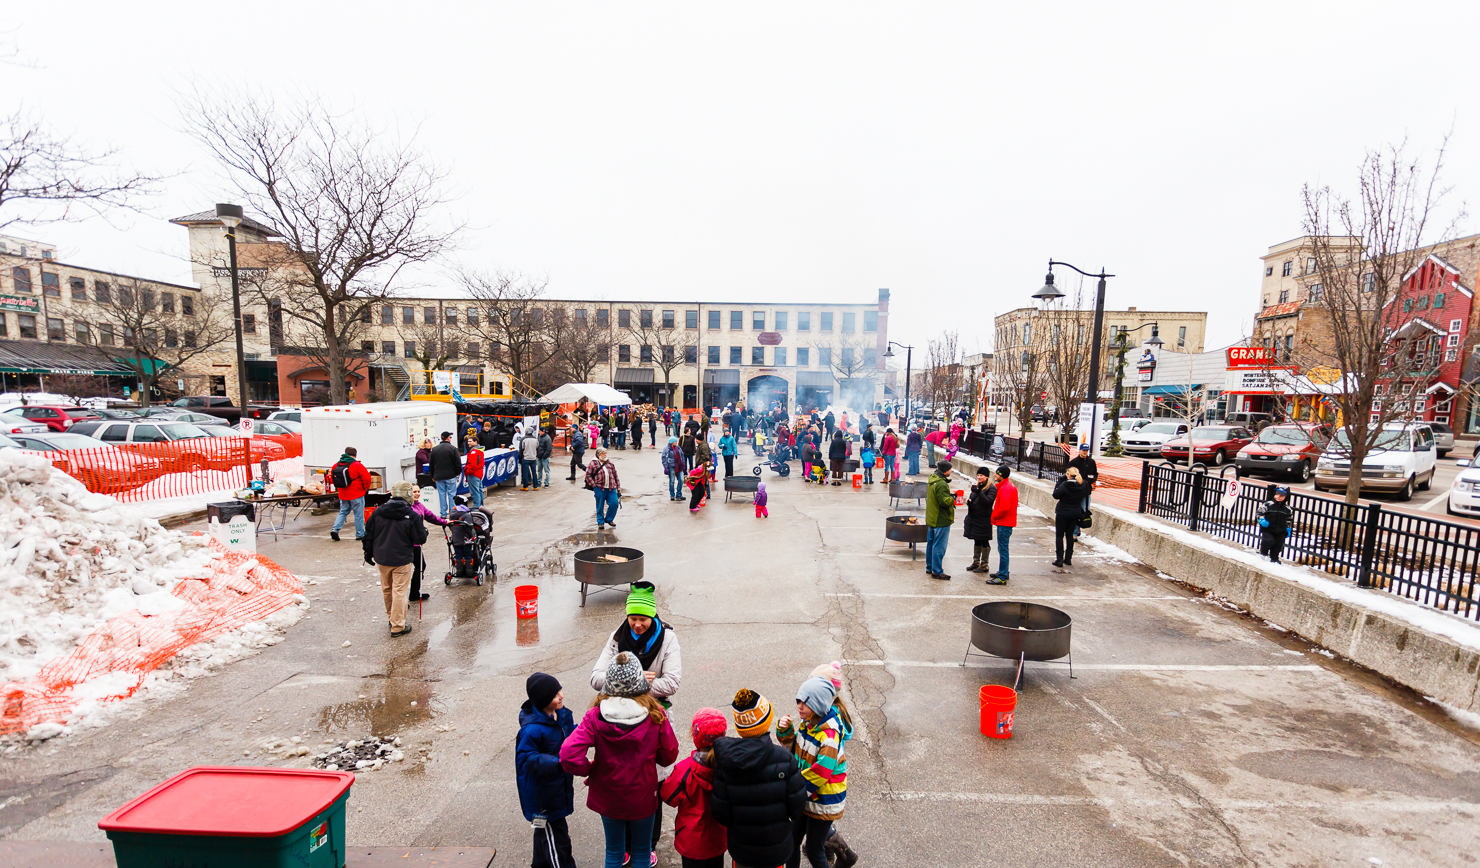 Grand Haven Winterfest Bonfire Bash - Photo: Randy Riksen Photography